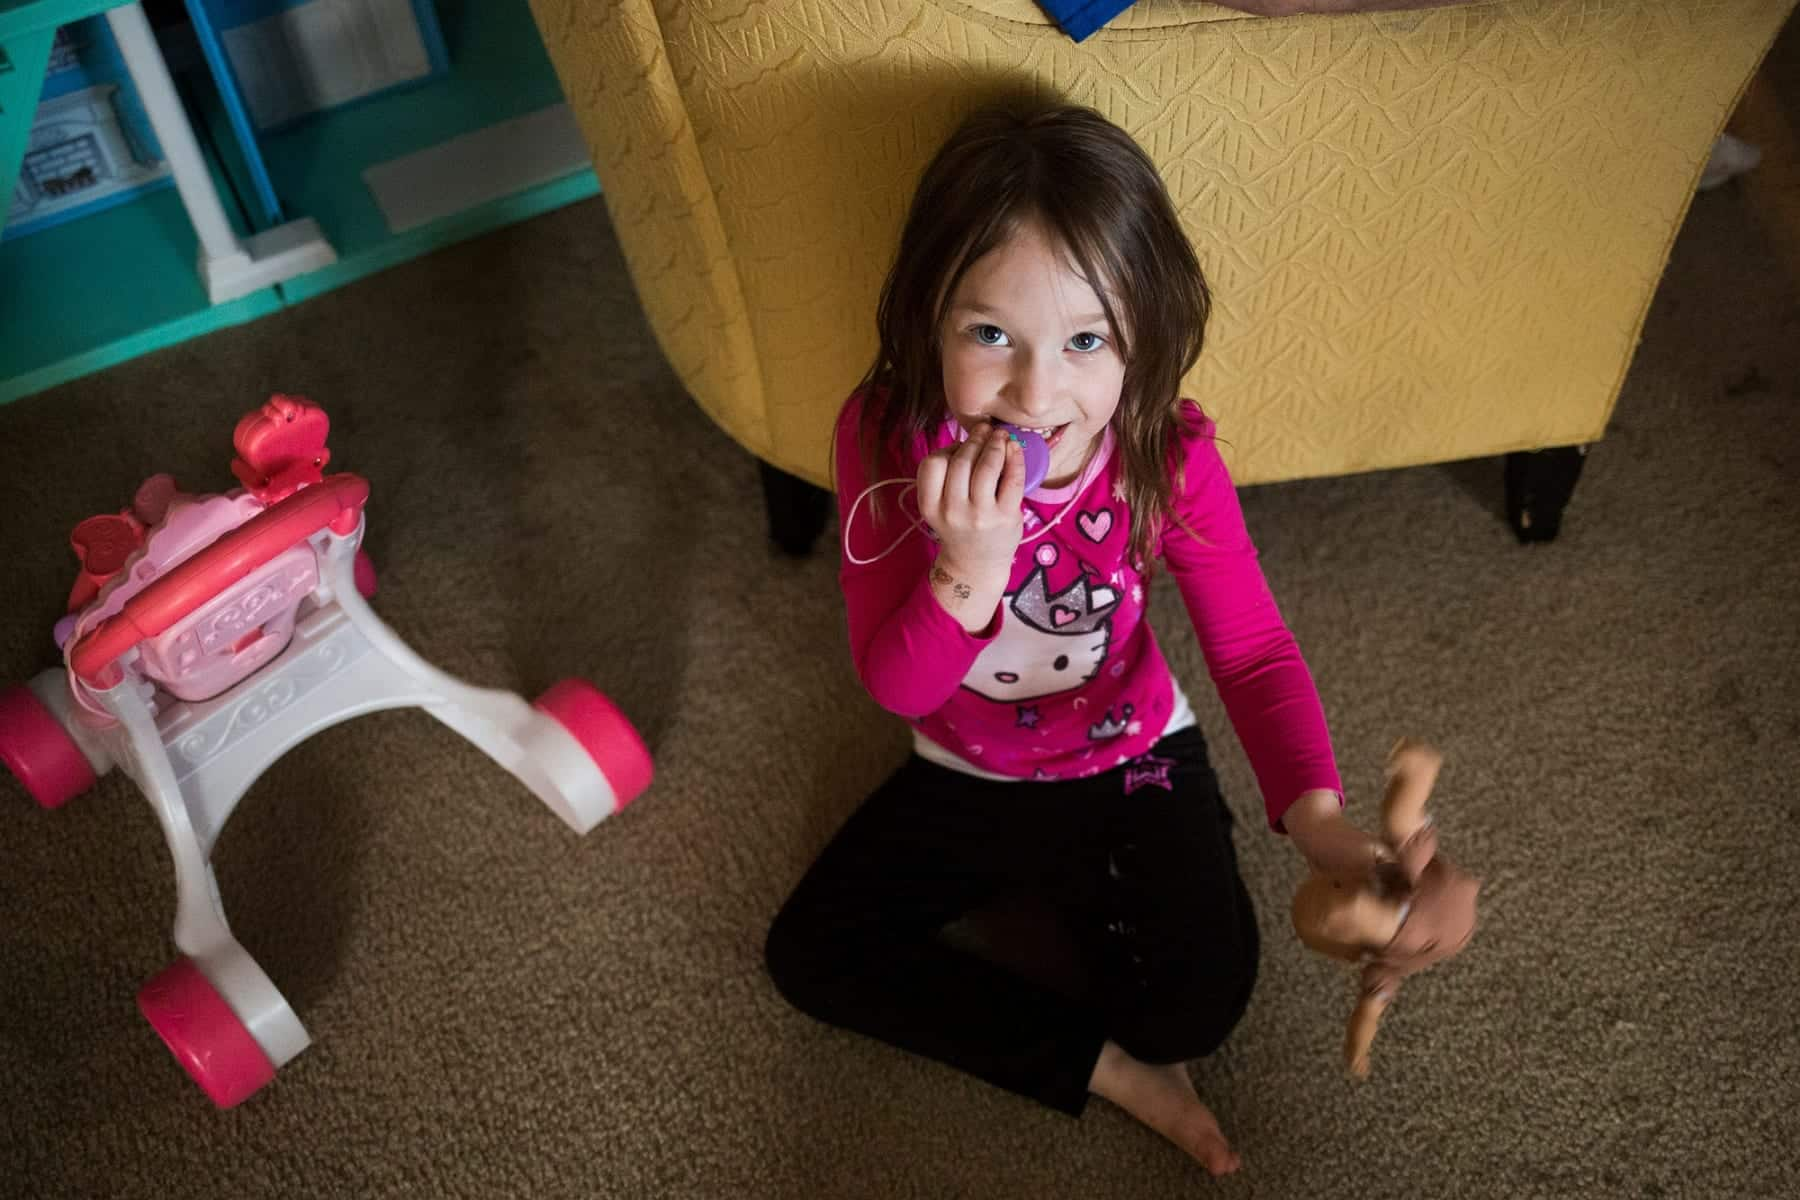 All three of the Schrum children have some form of special needs, making little things like making and eating dinner tough for the family. Zara, 2, has Caudal regression syndrome, a disease similar to spinal bifida. Her sister Marielynn, 4, has a form of autism.  (Photos by Paul Chaplin for Our York Media)